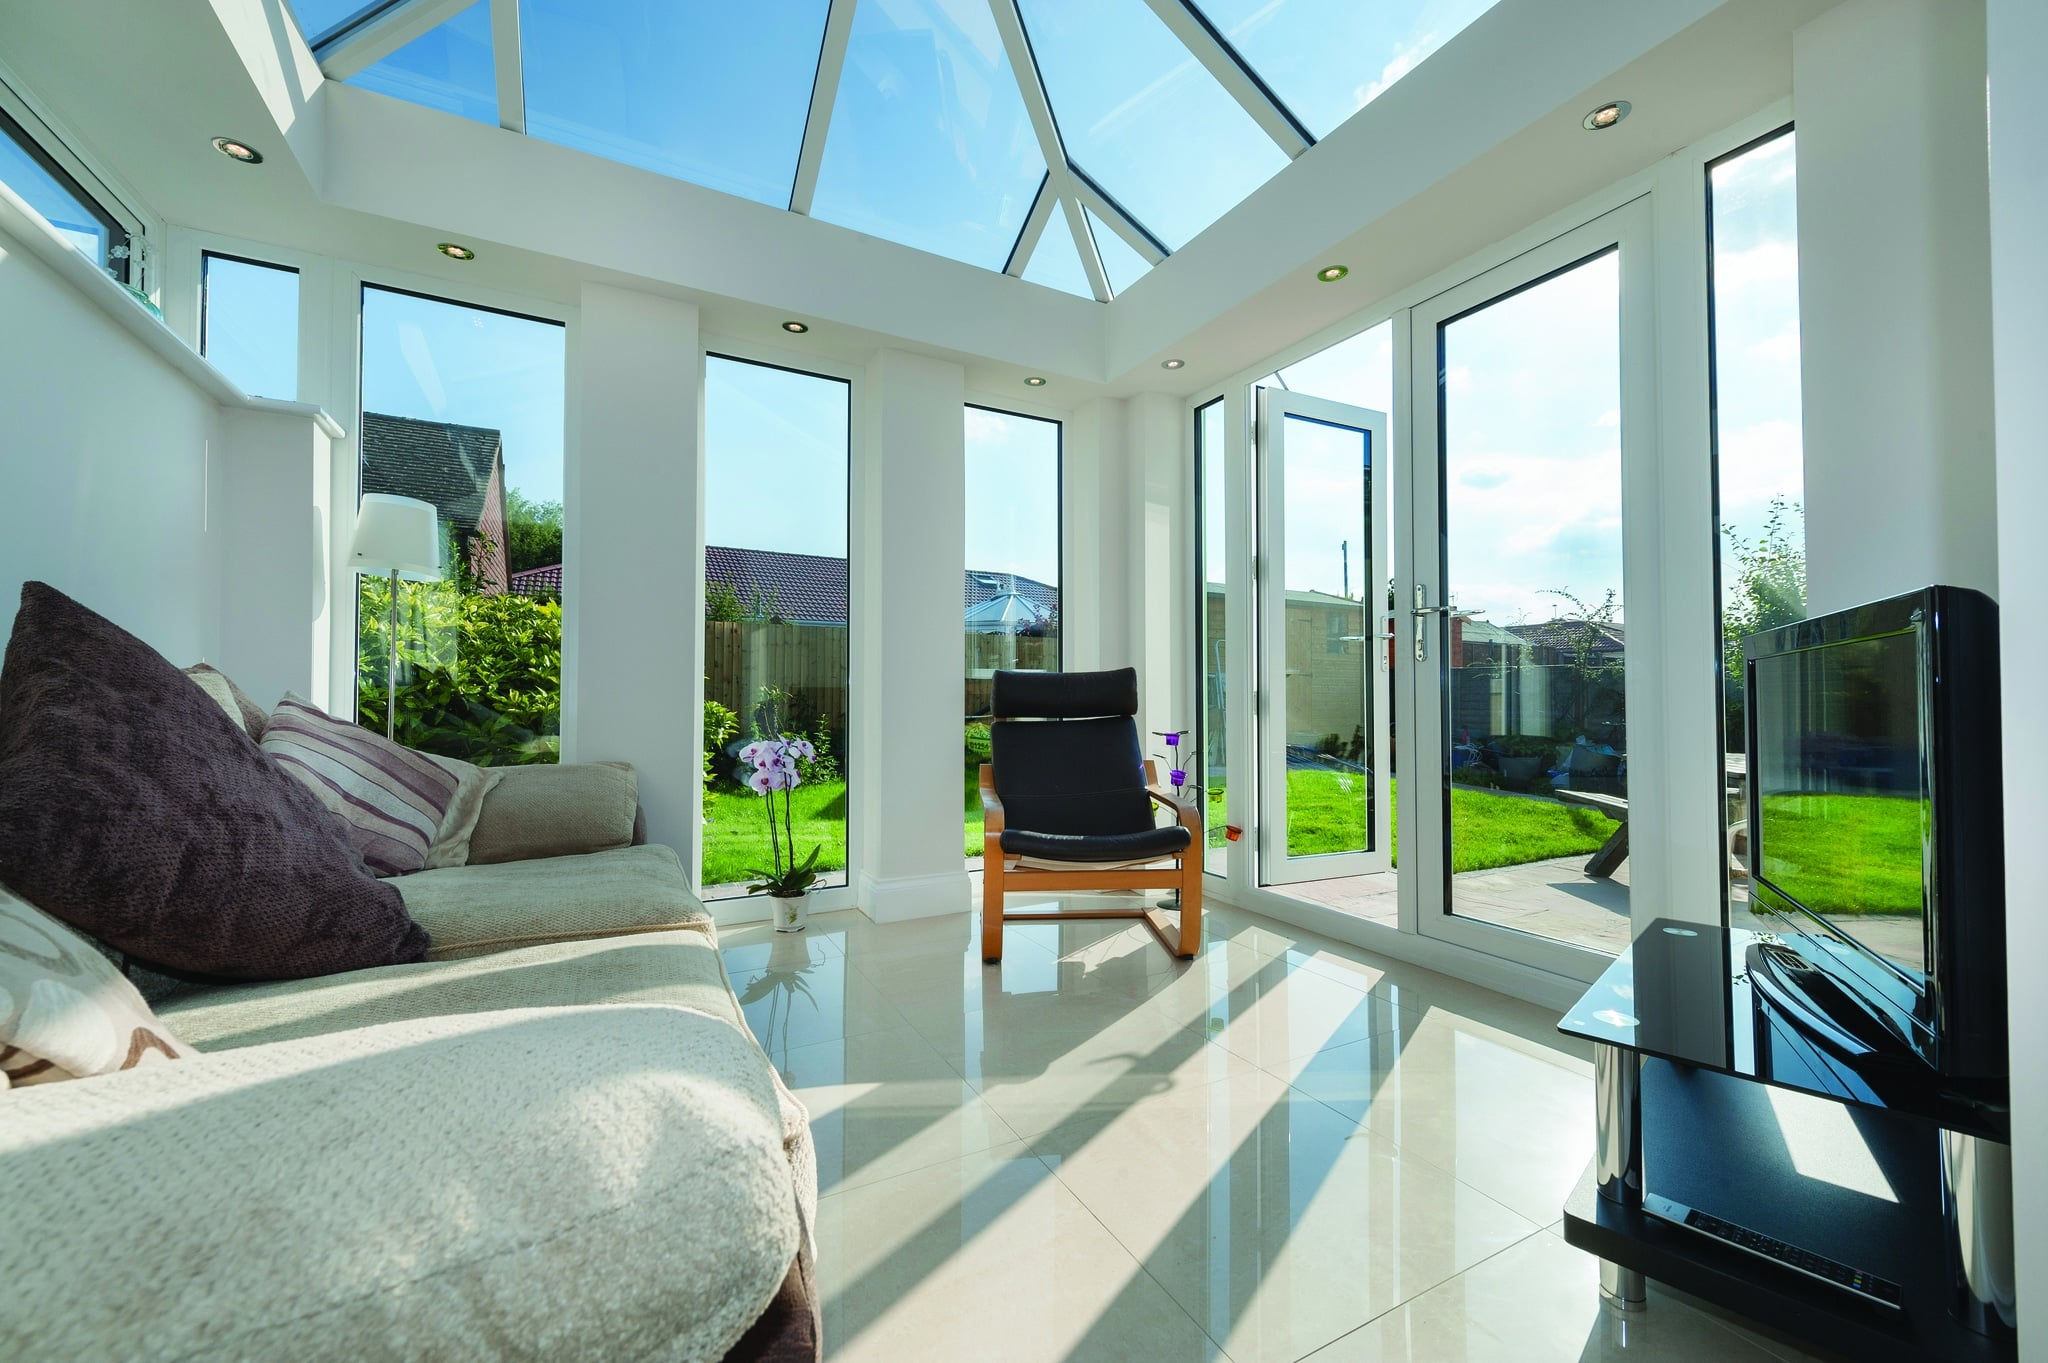 New Conservatory Cornwall